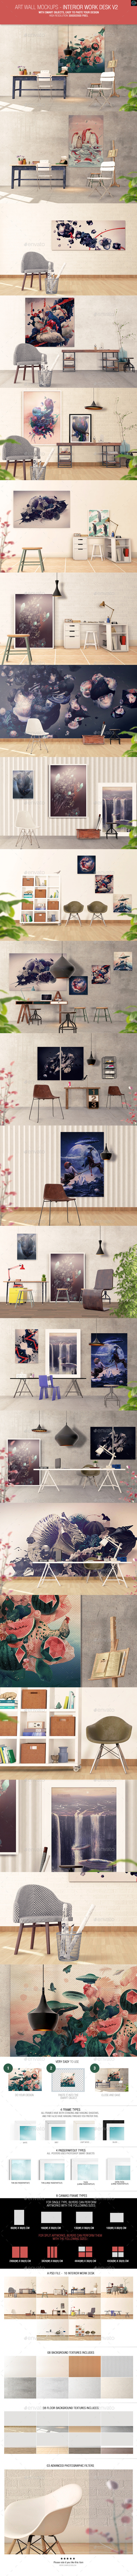 Art Wall Mockups - Interior Work Desk V2 - Miscellaneous Displays